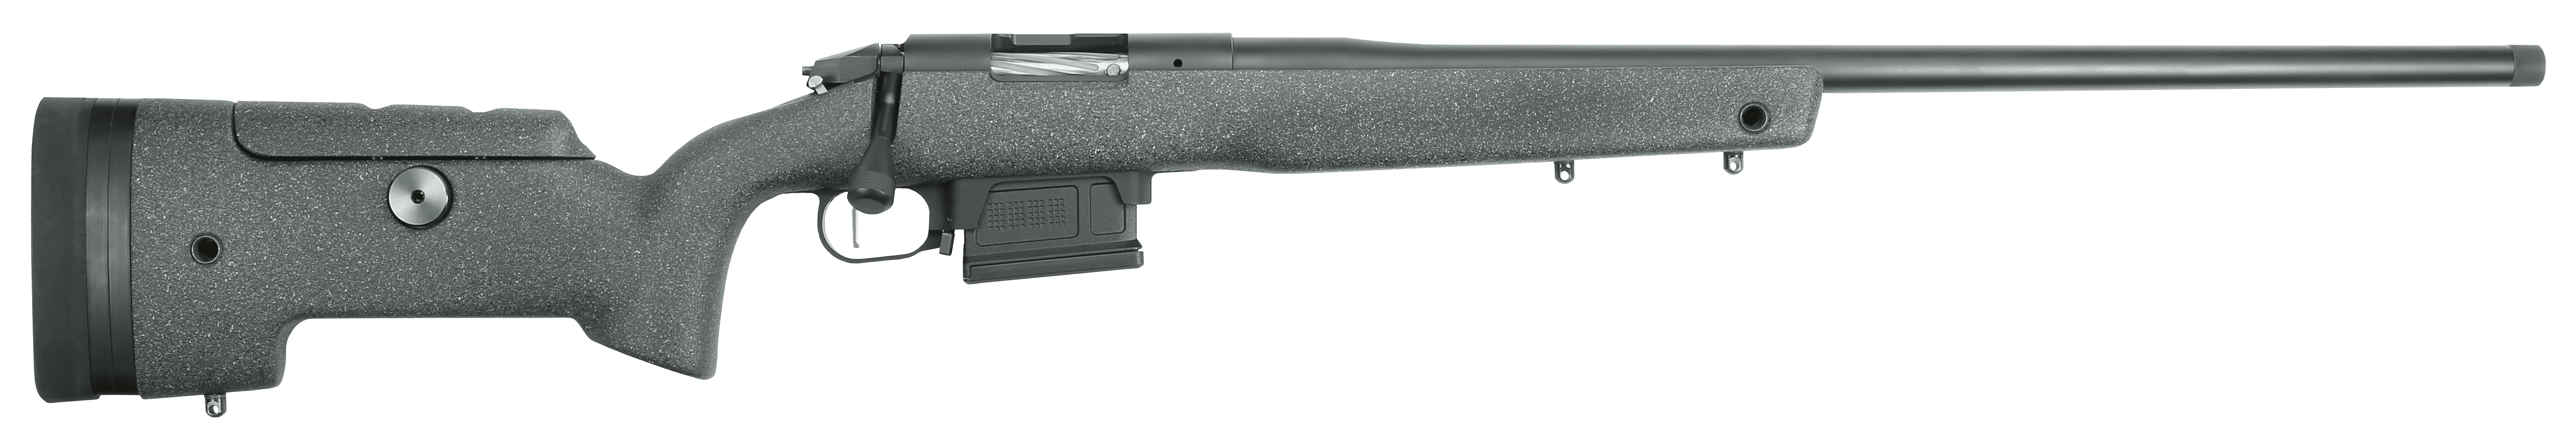 Premier Long Range Rifle 11 28 17